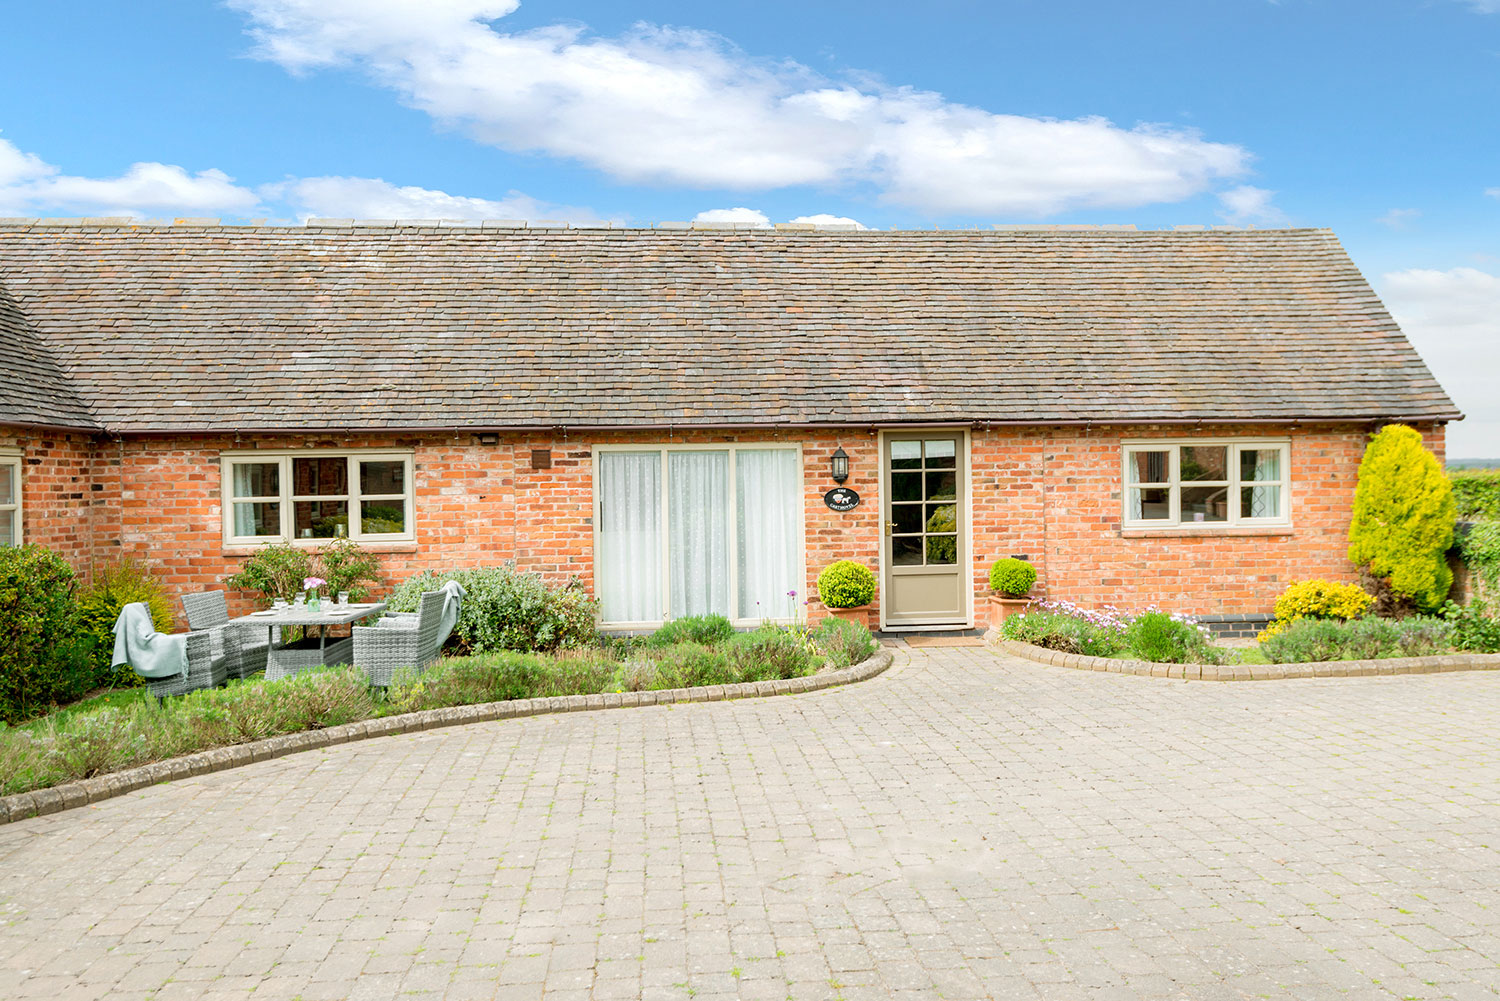 Accessible holiday accommodation in the heart of England | Upper Rectory Farm Cottages